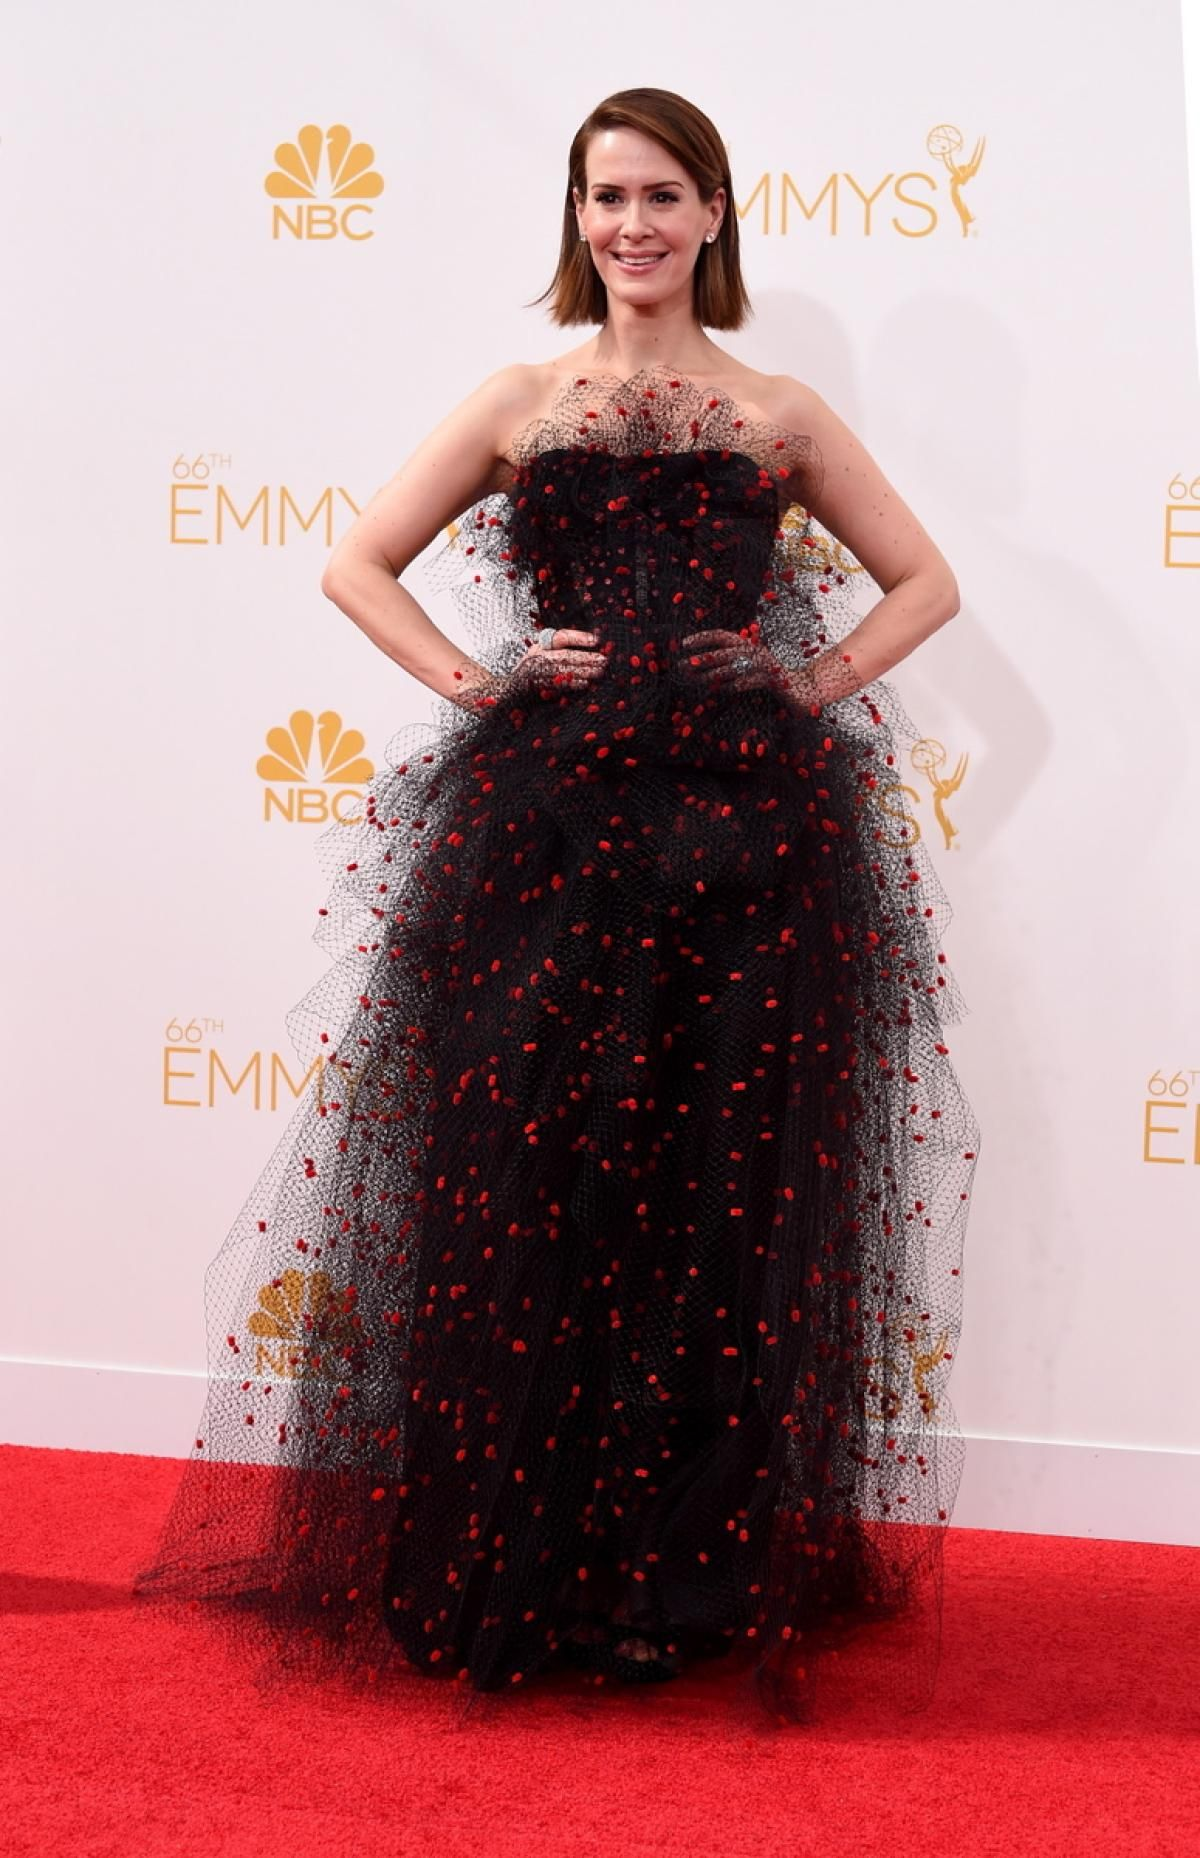 Sarah Paulson went for a haute couture look as she walked the red carpet in a Armani Prive black tulle gown with red sequins.I posted this on our tutu board